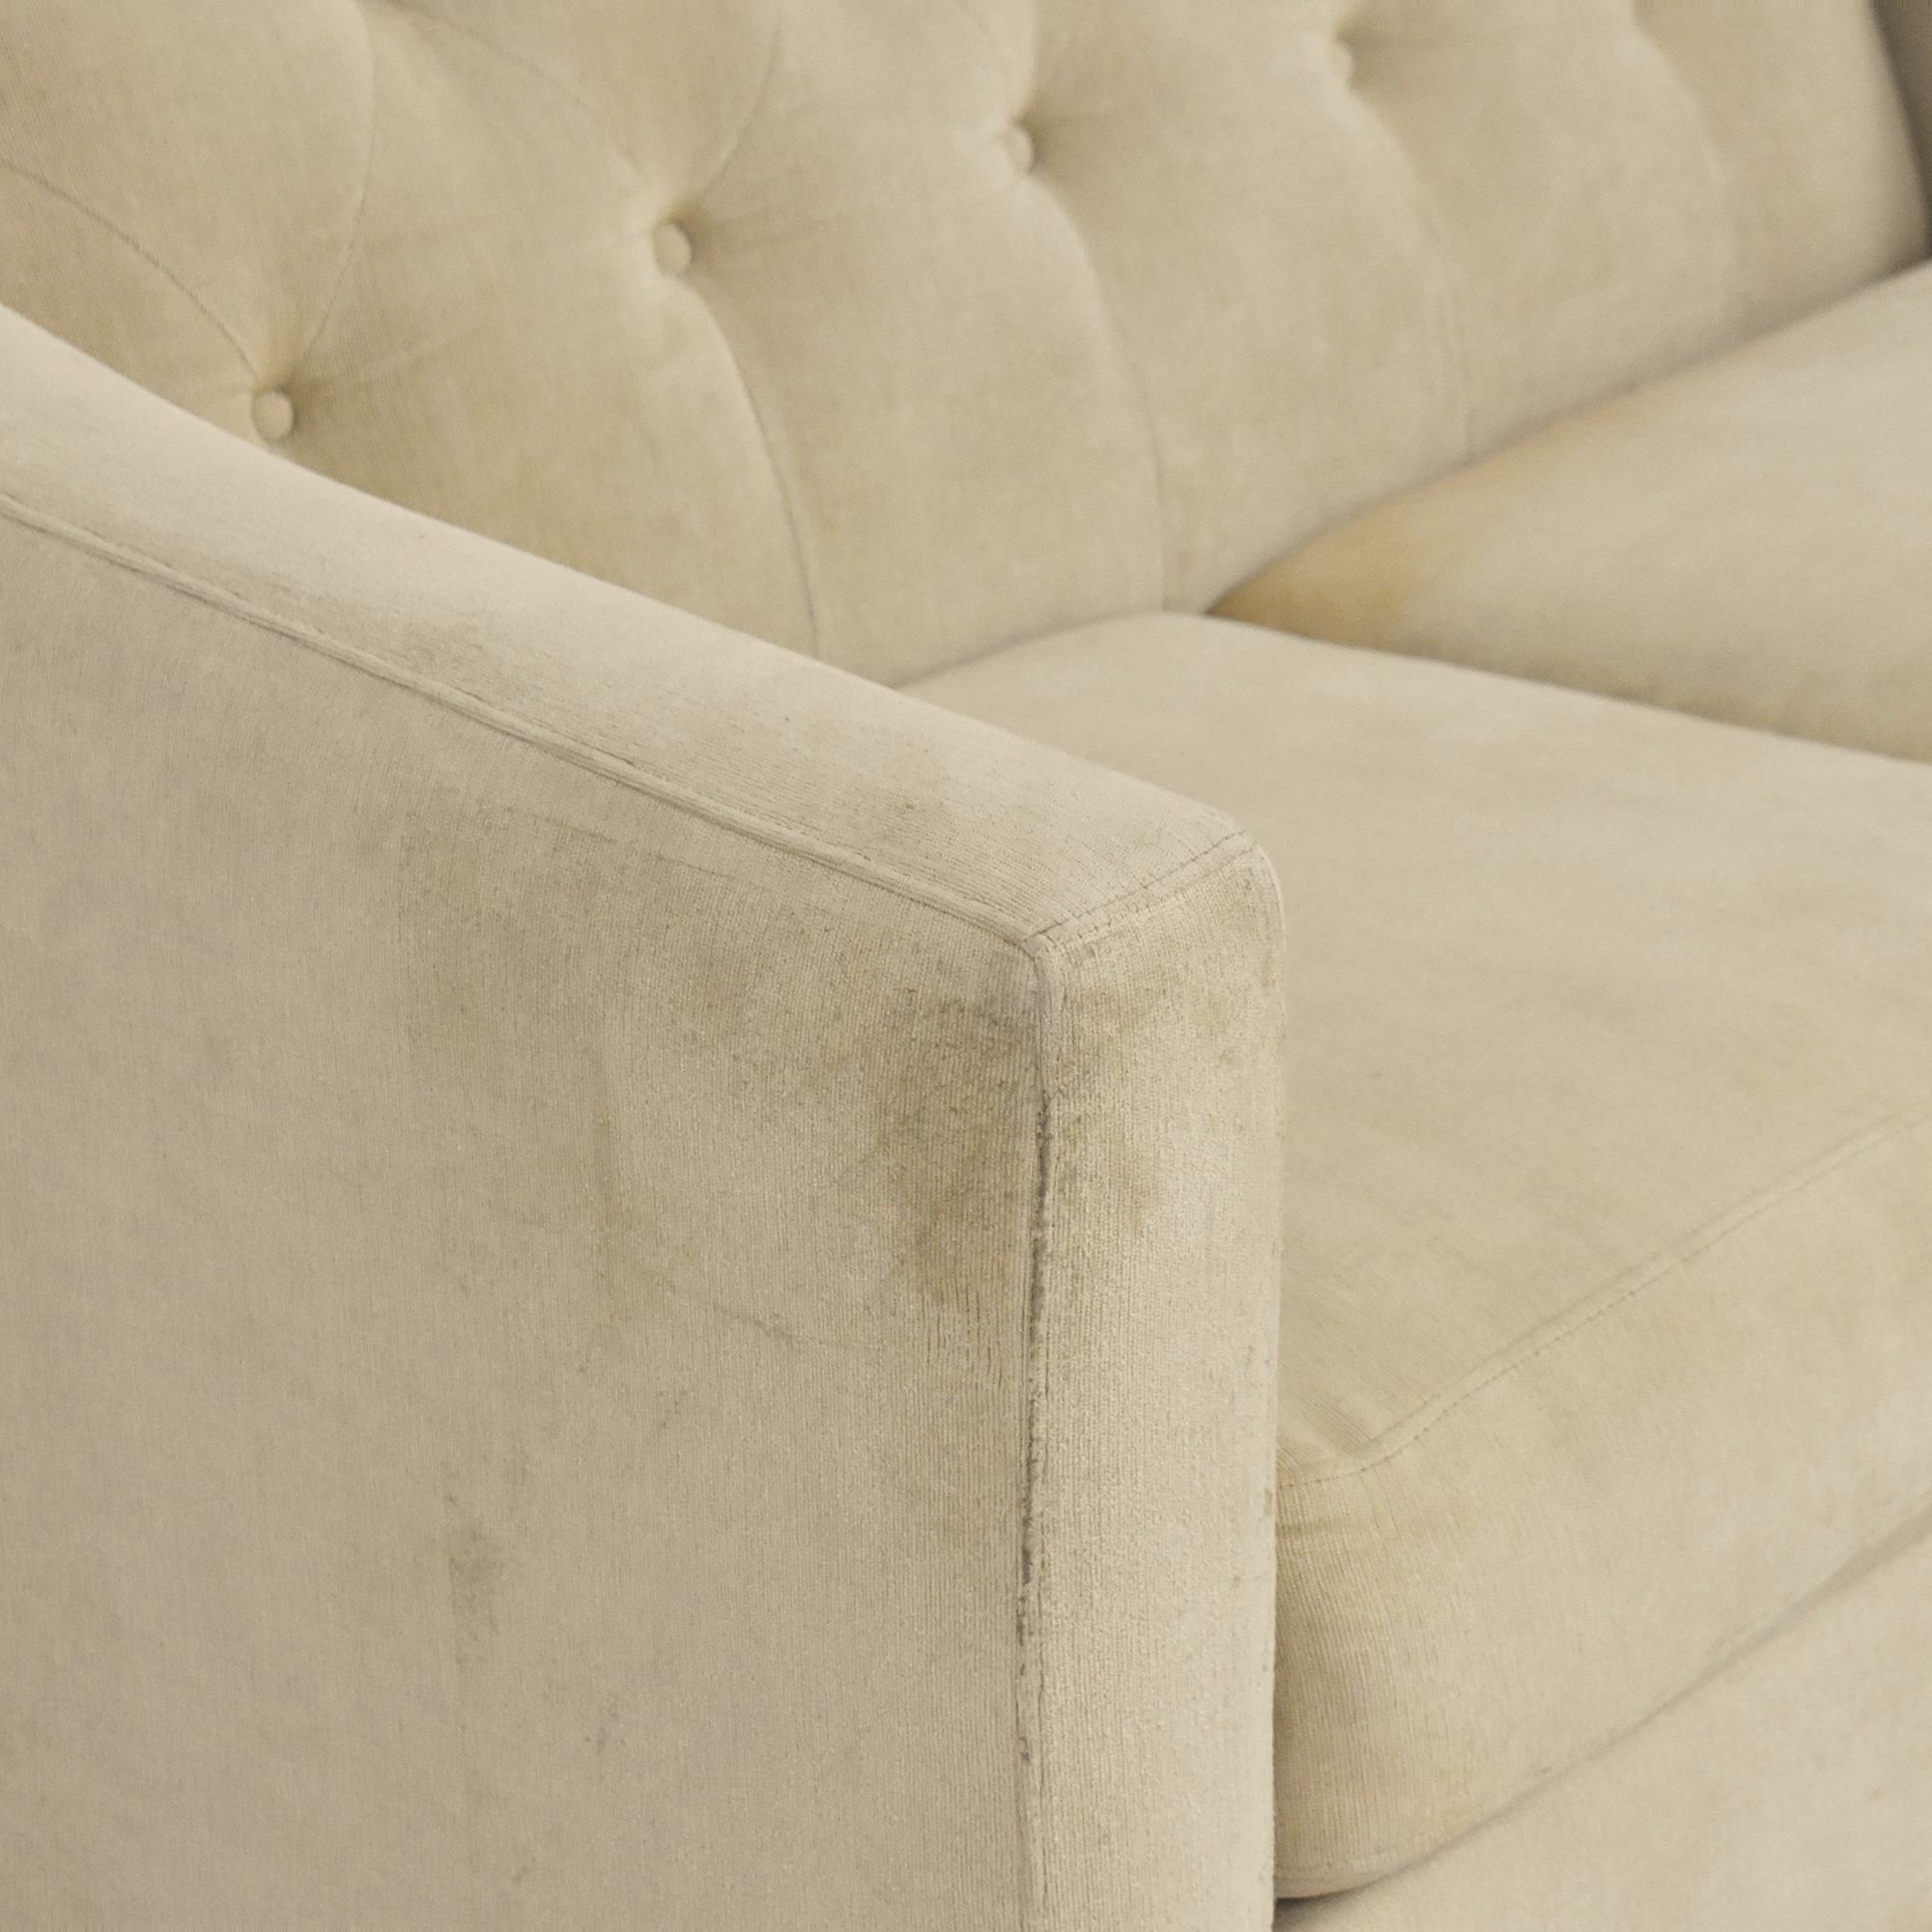 Raymour & Flanigan Raymour & Flanigan Tufted Loveseat second hand